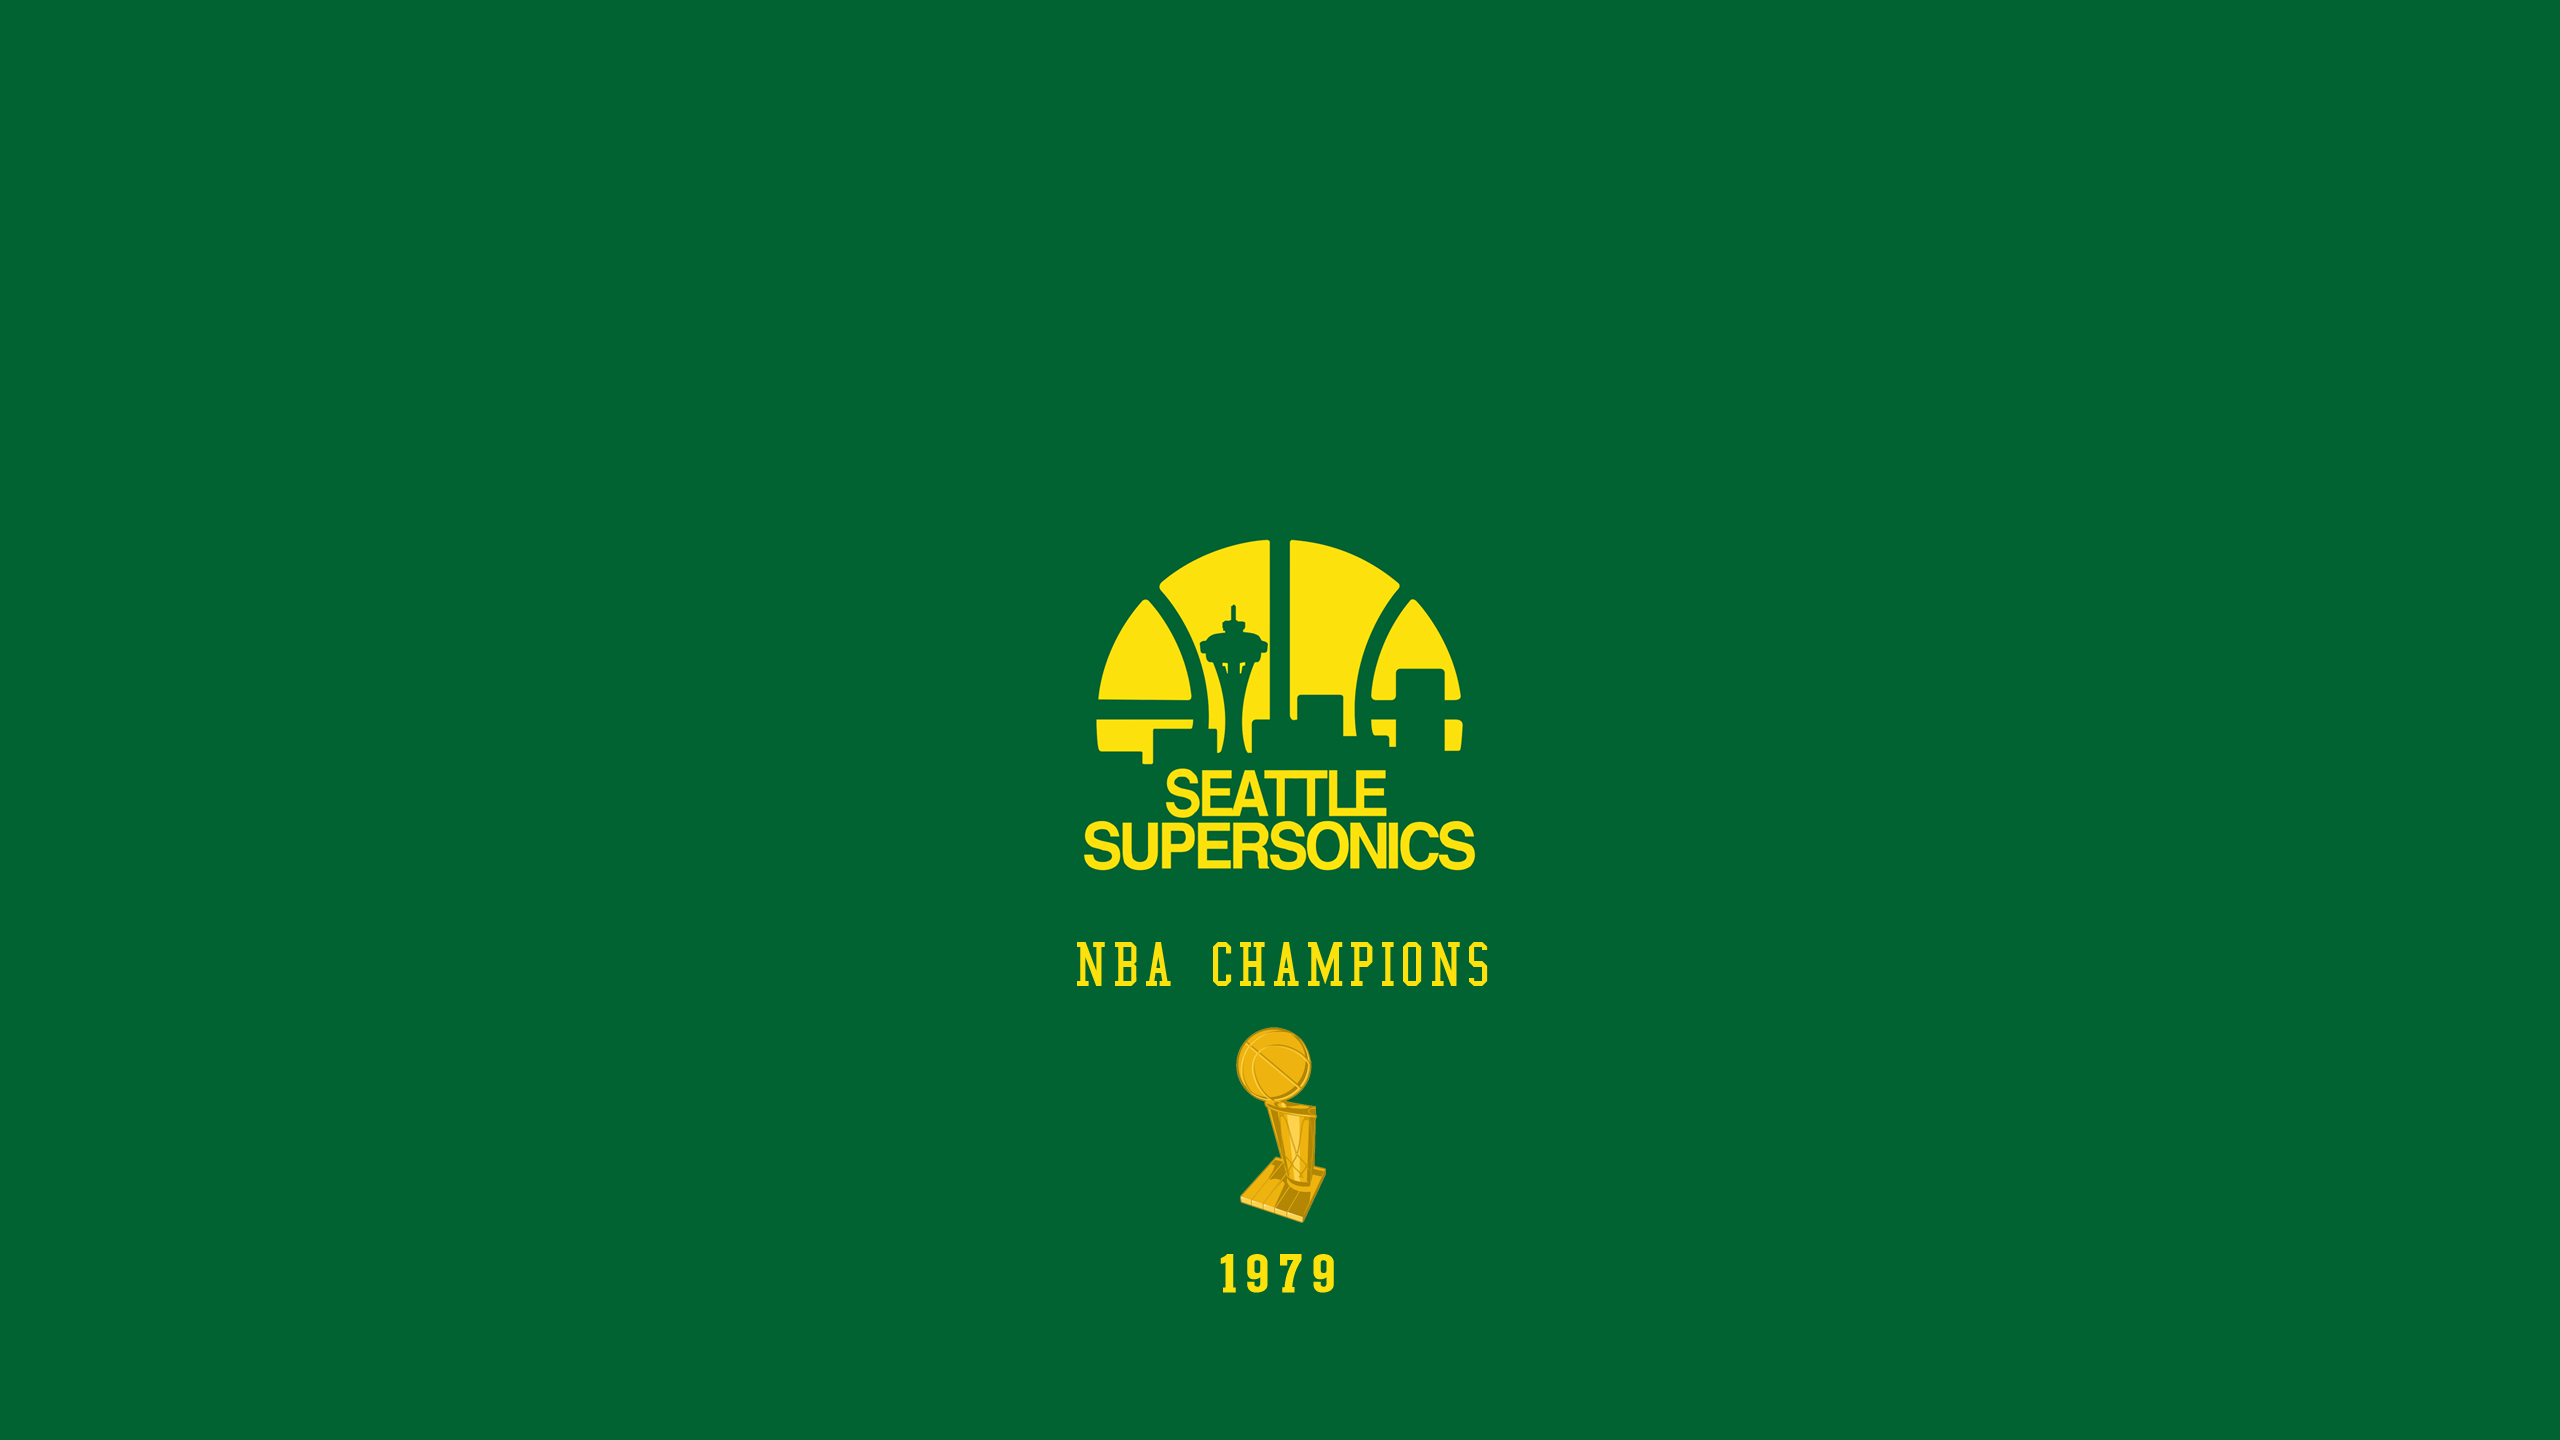 Seattle Supersonics - NBA Champs